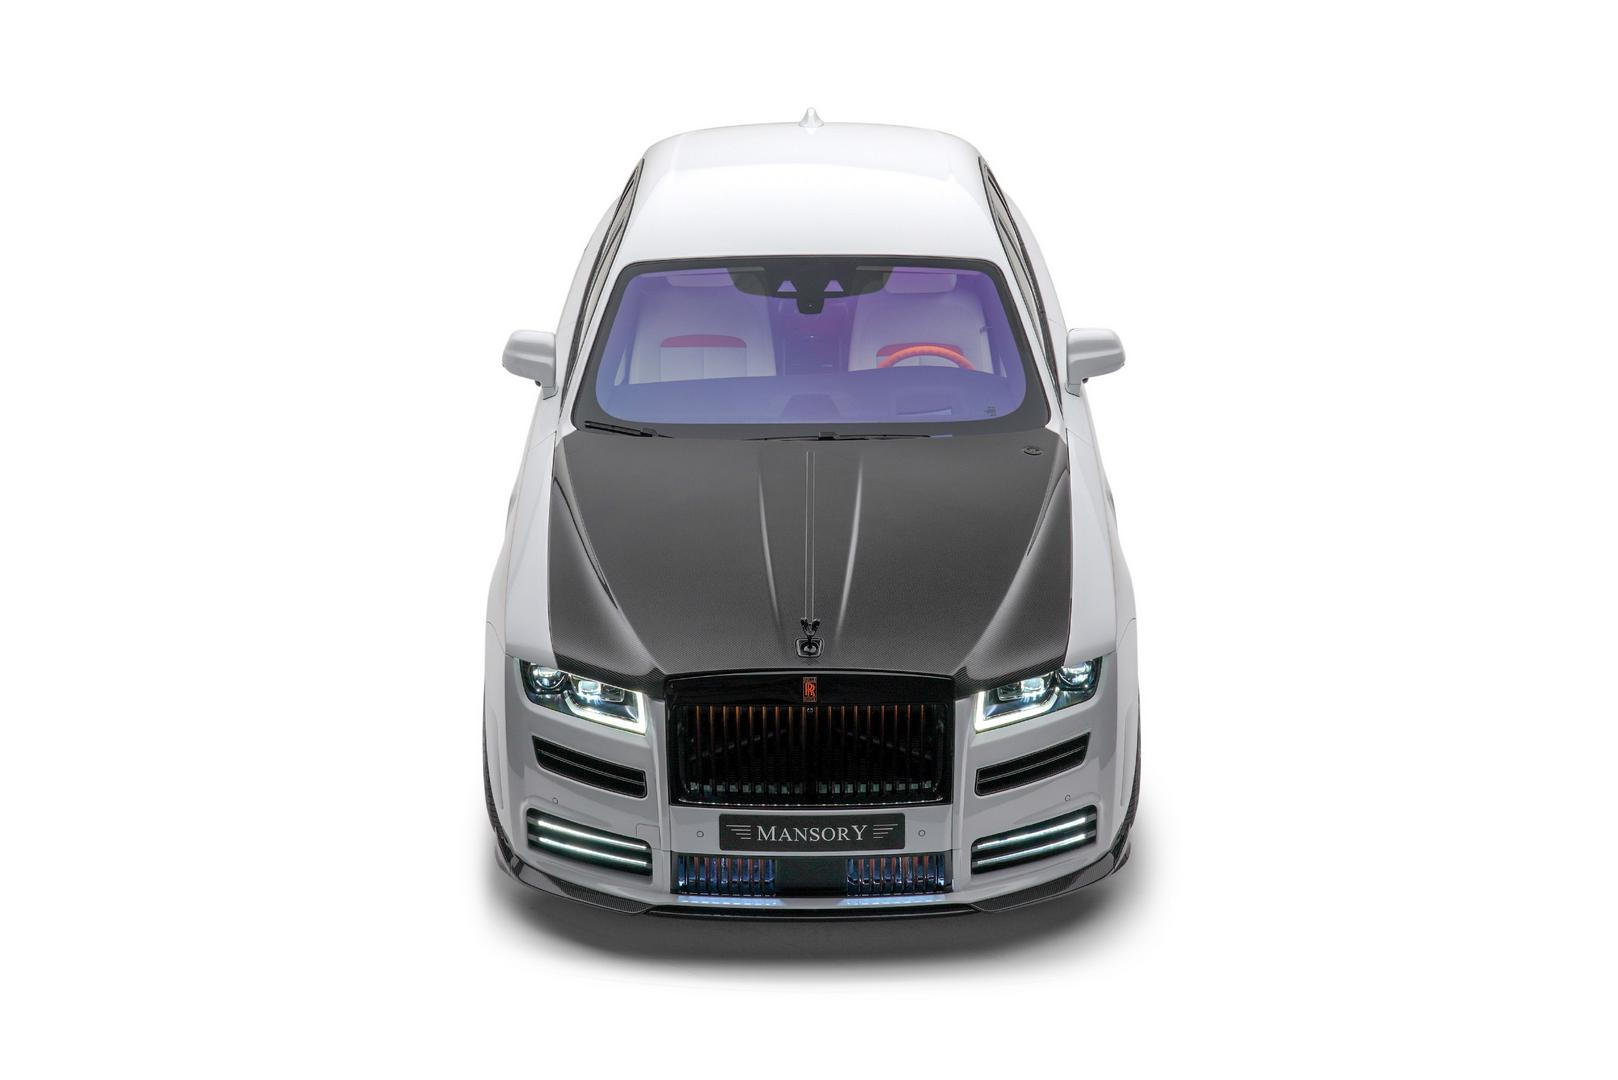 Mansory RR Ghost front bumper